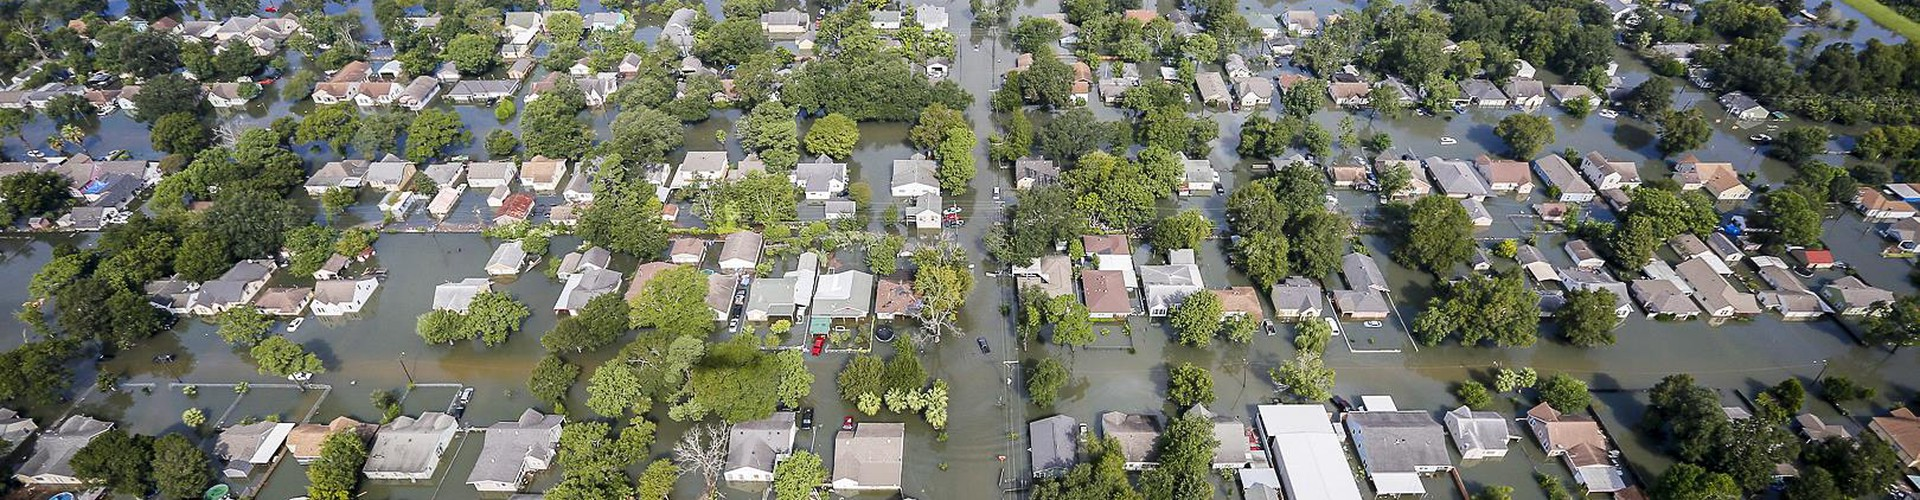 Aerial view showing flooding from Harvey in a residential area in Southeast Texas, Aug. 31, 2017 (Credit: Air National Guard photo by Staff Sgt. Daniel J. Martinez)